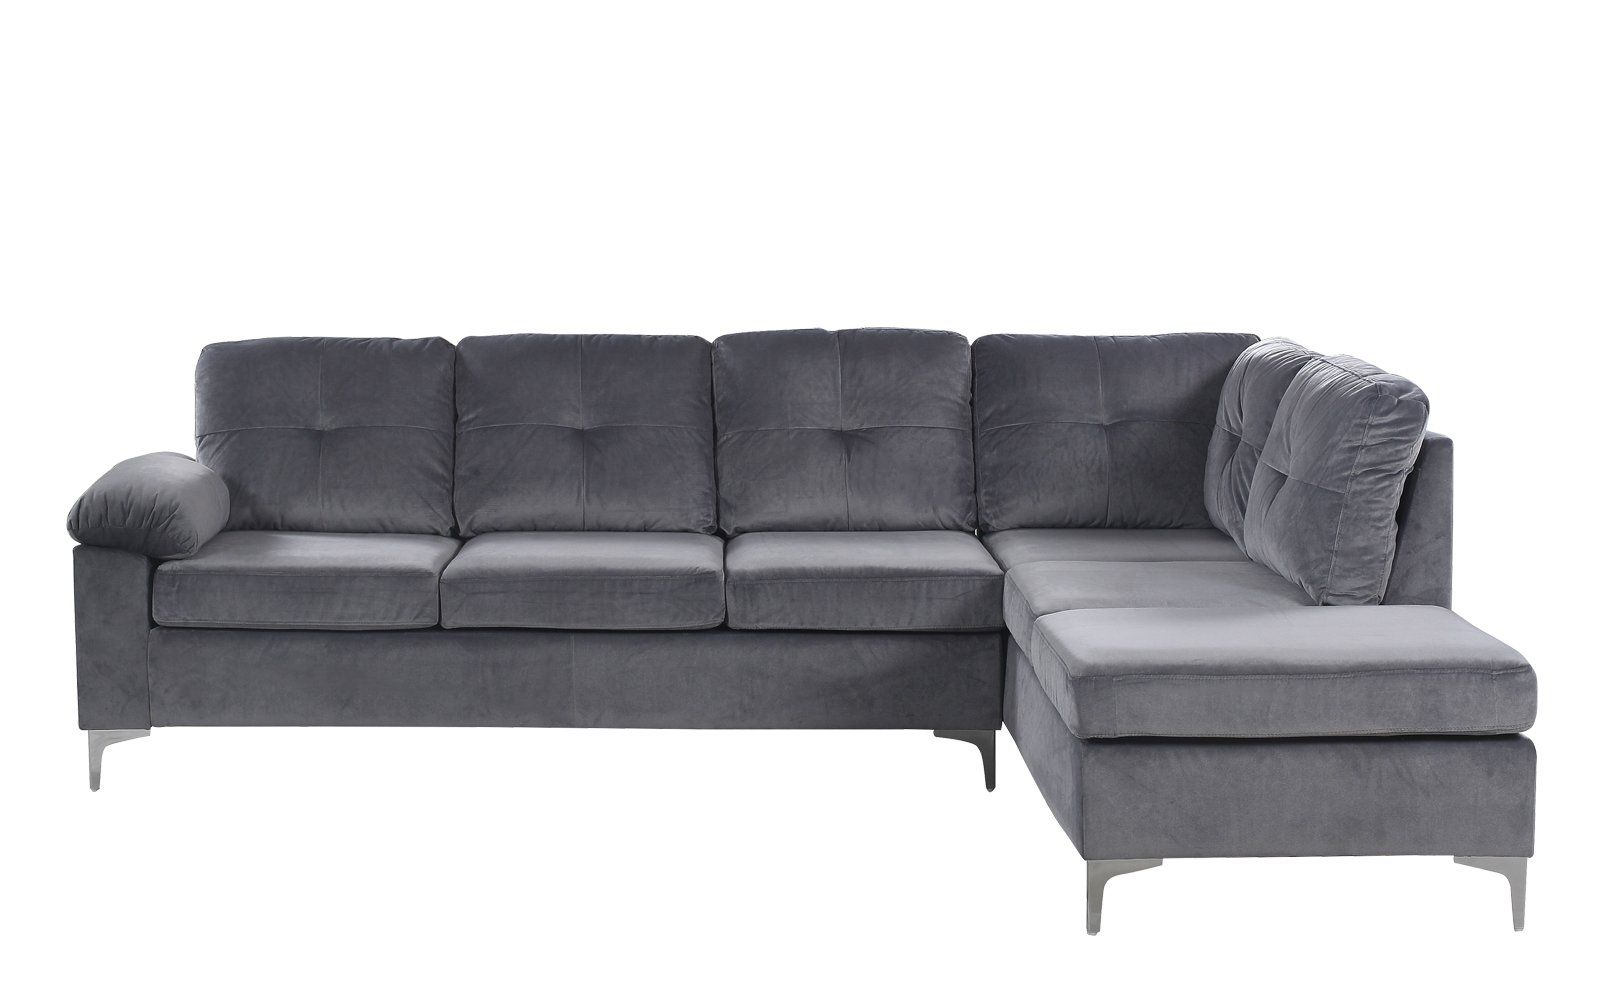 modern microfiber grey sectional sofa coffee table set helsinki tufted brush